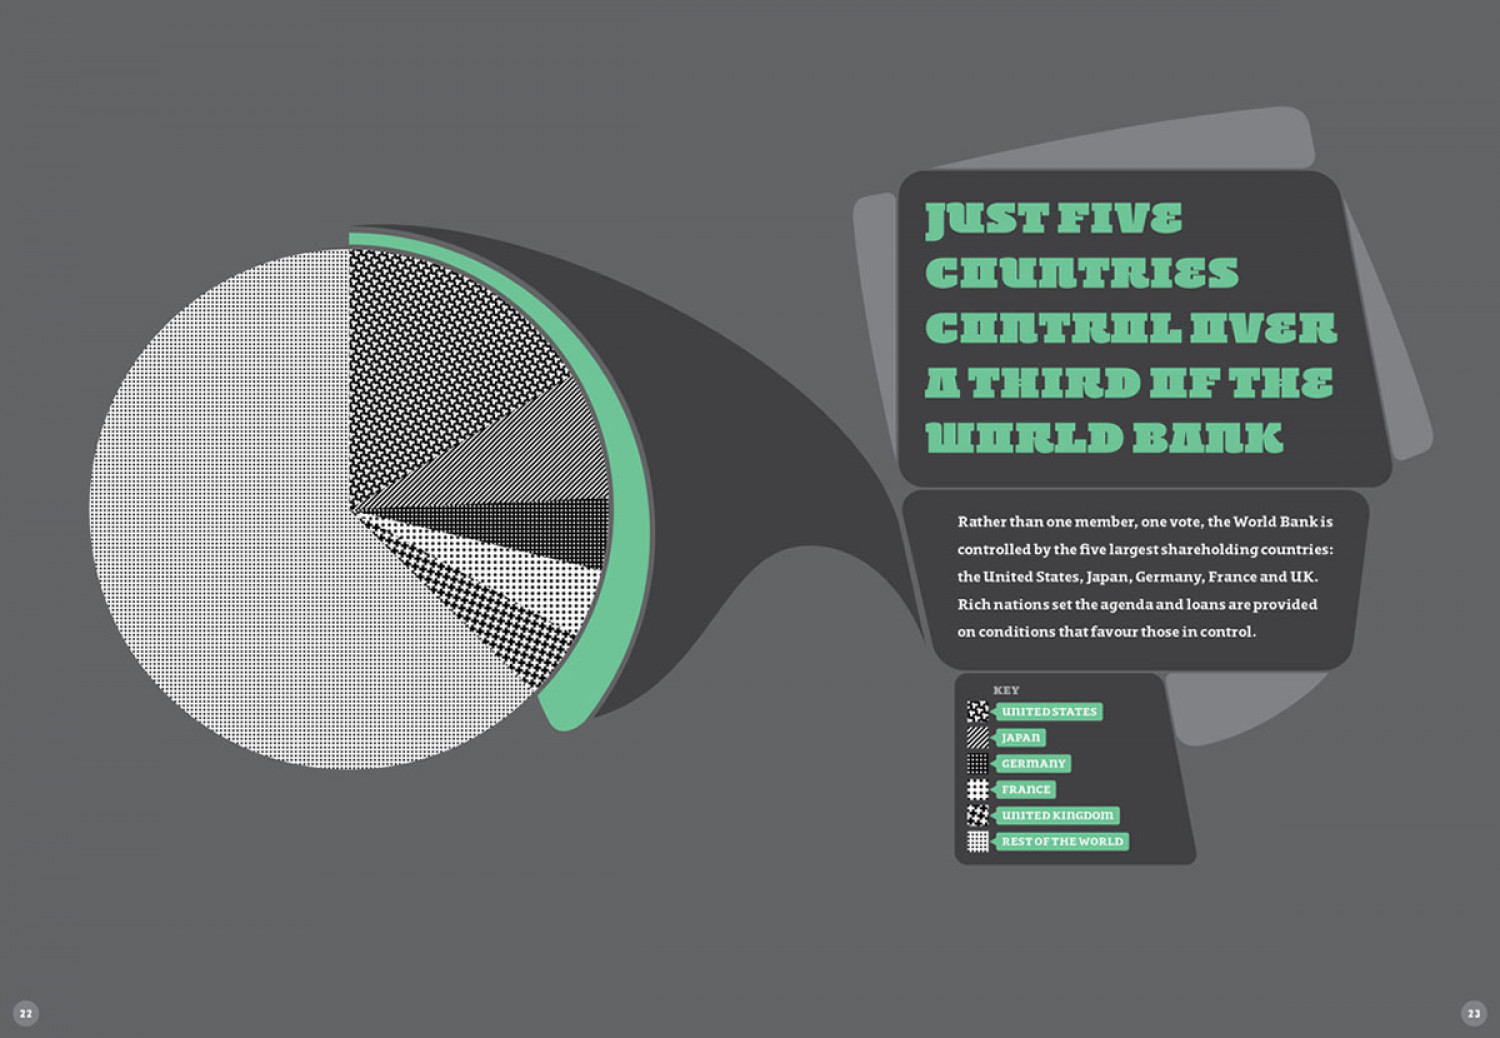 Just Five Countries Control Over a Third of the World Bank  Infographic